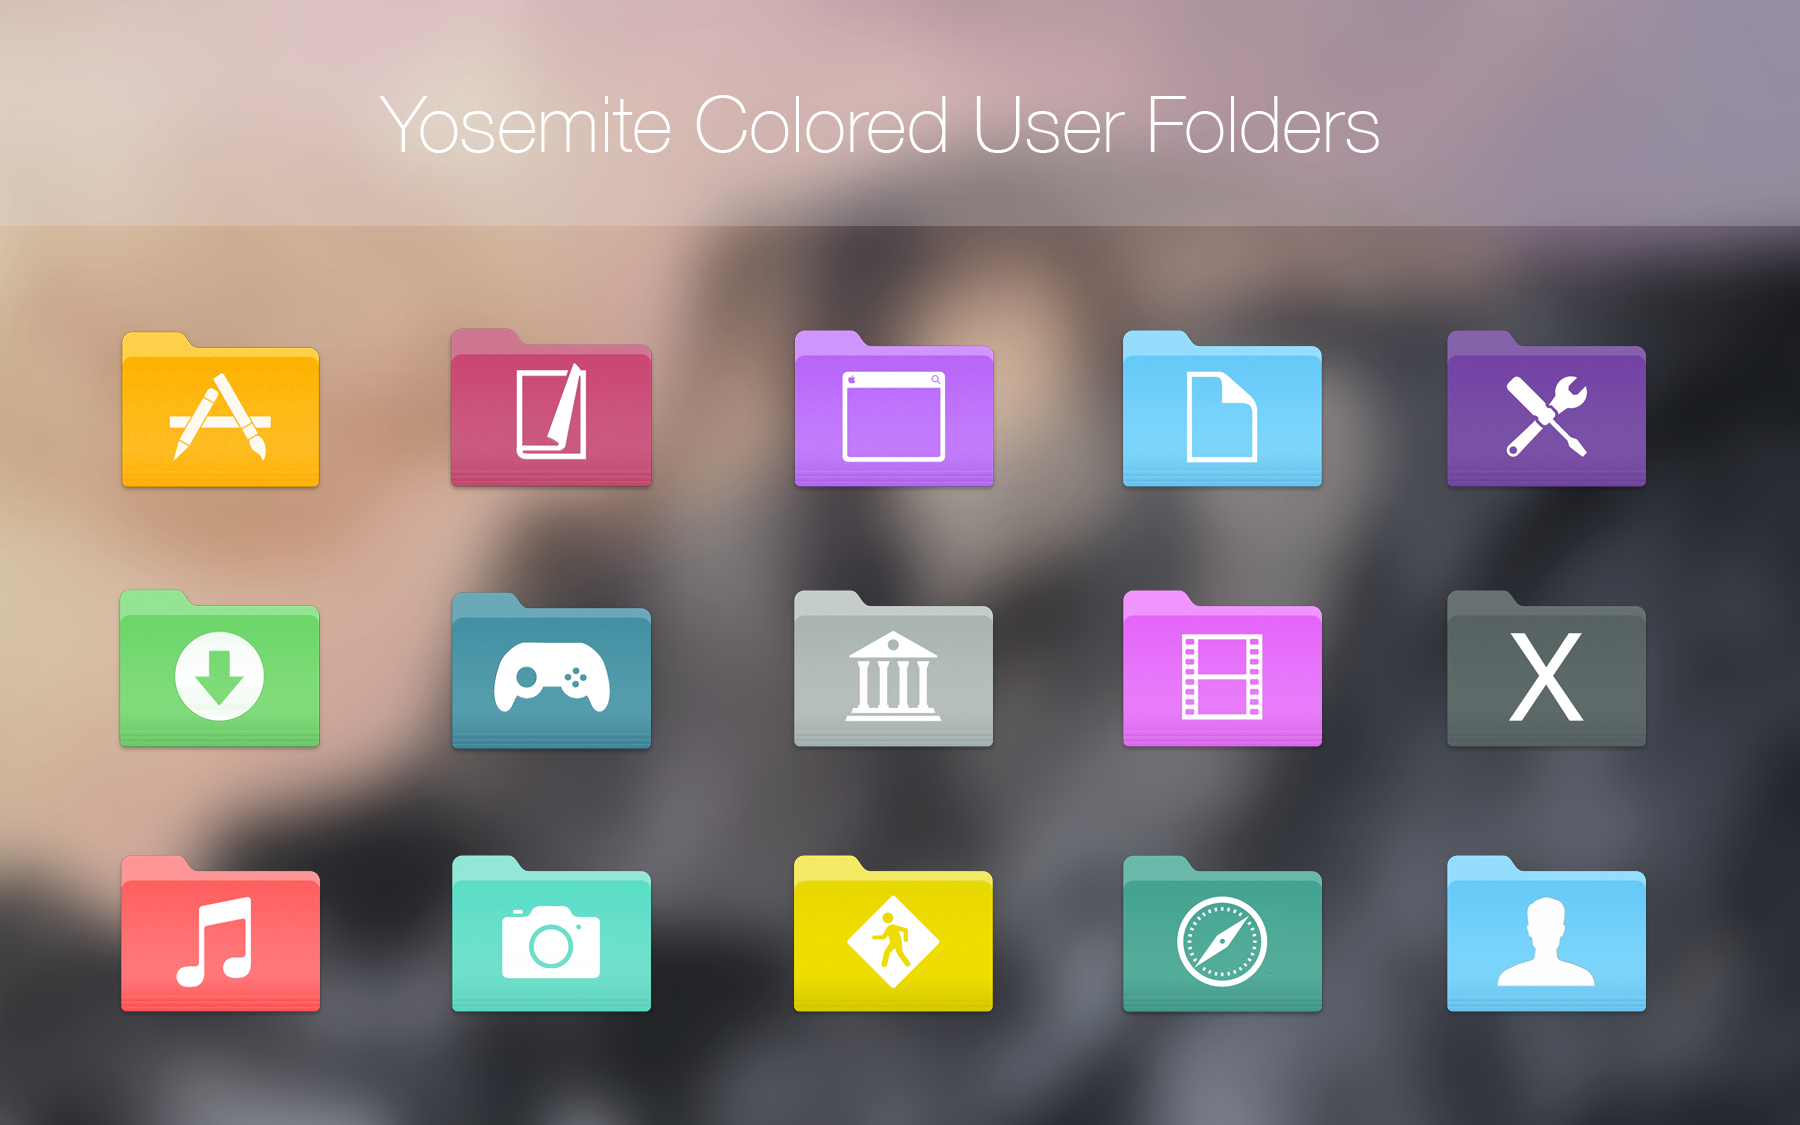 Yosemite Colored User Folders by Dance-Floor-Junkie on